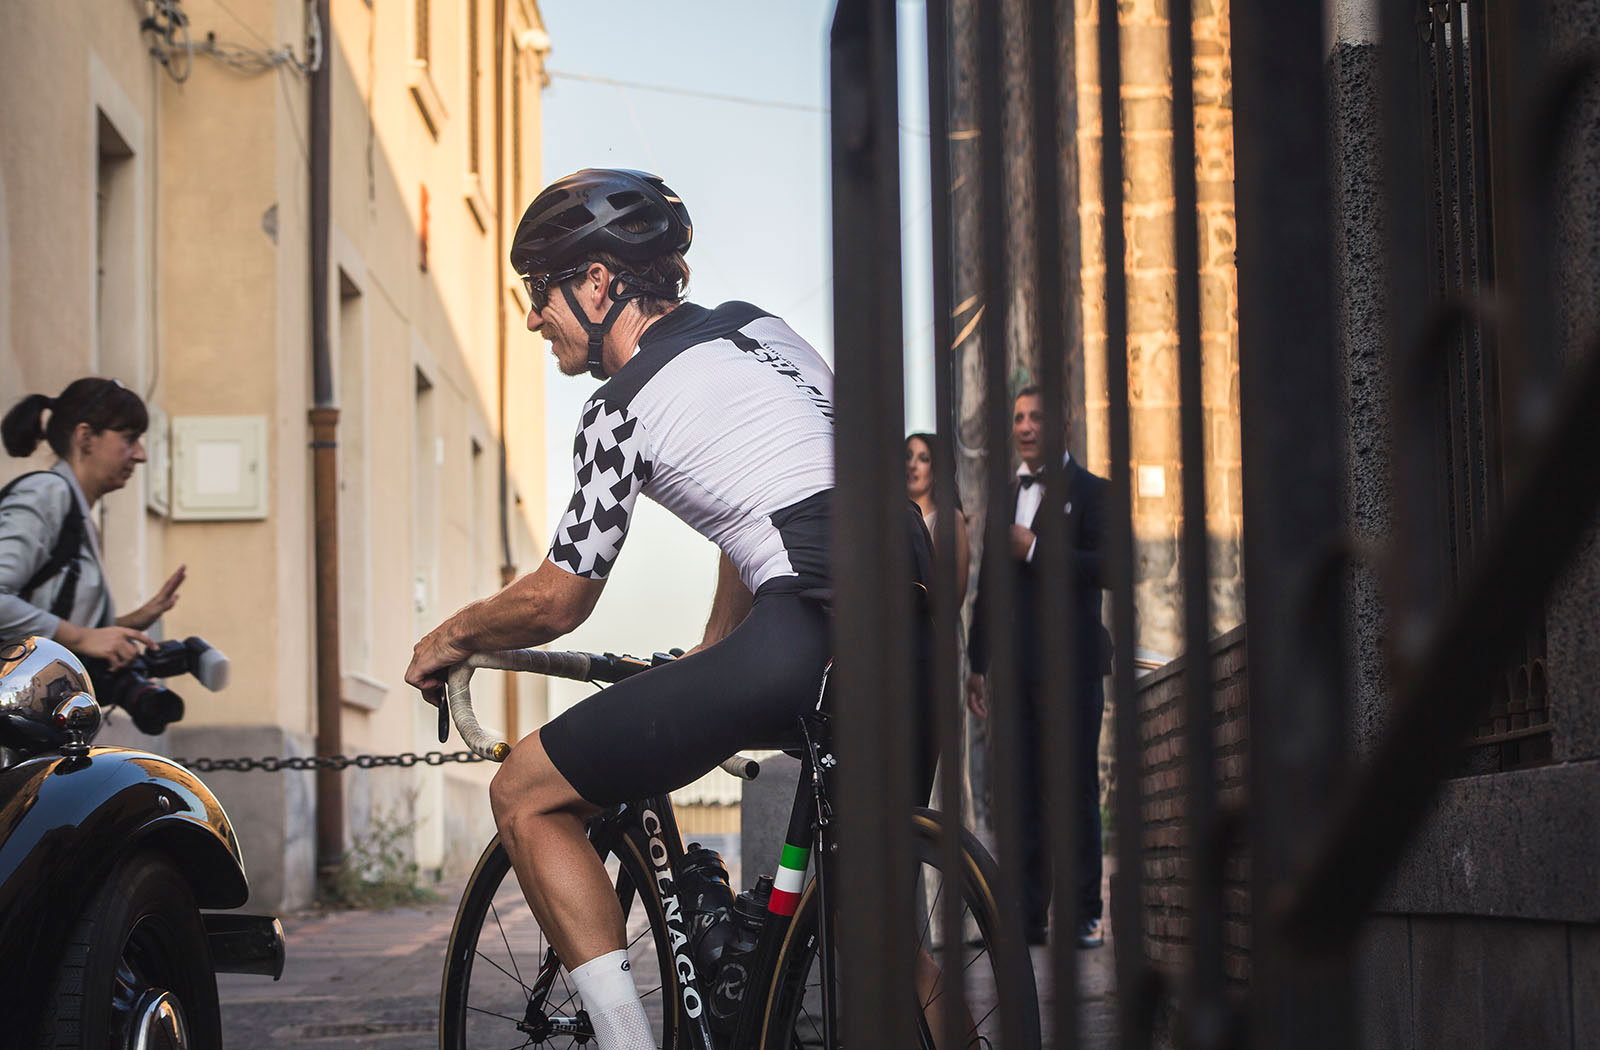 Blackroadcycling.com shows the Assos apparel in front of a wedding in Sicily